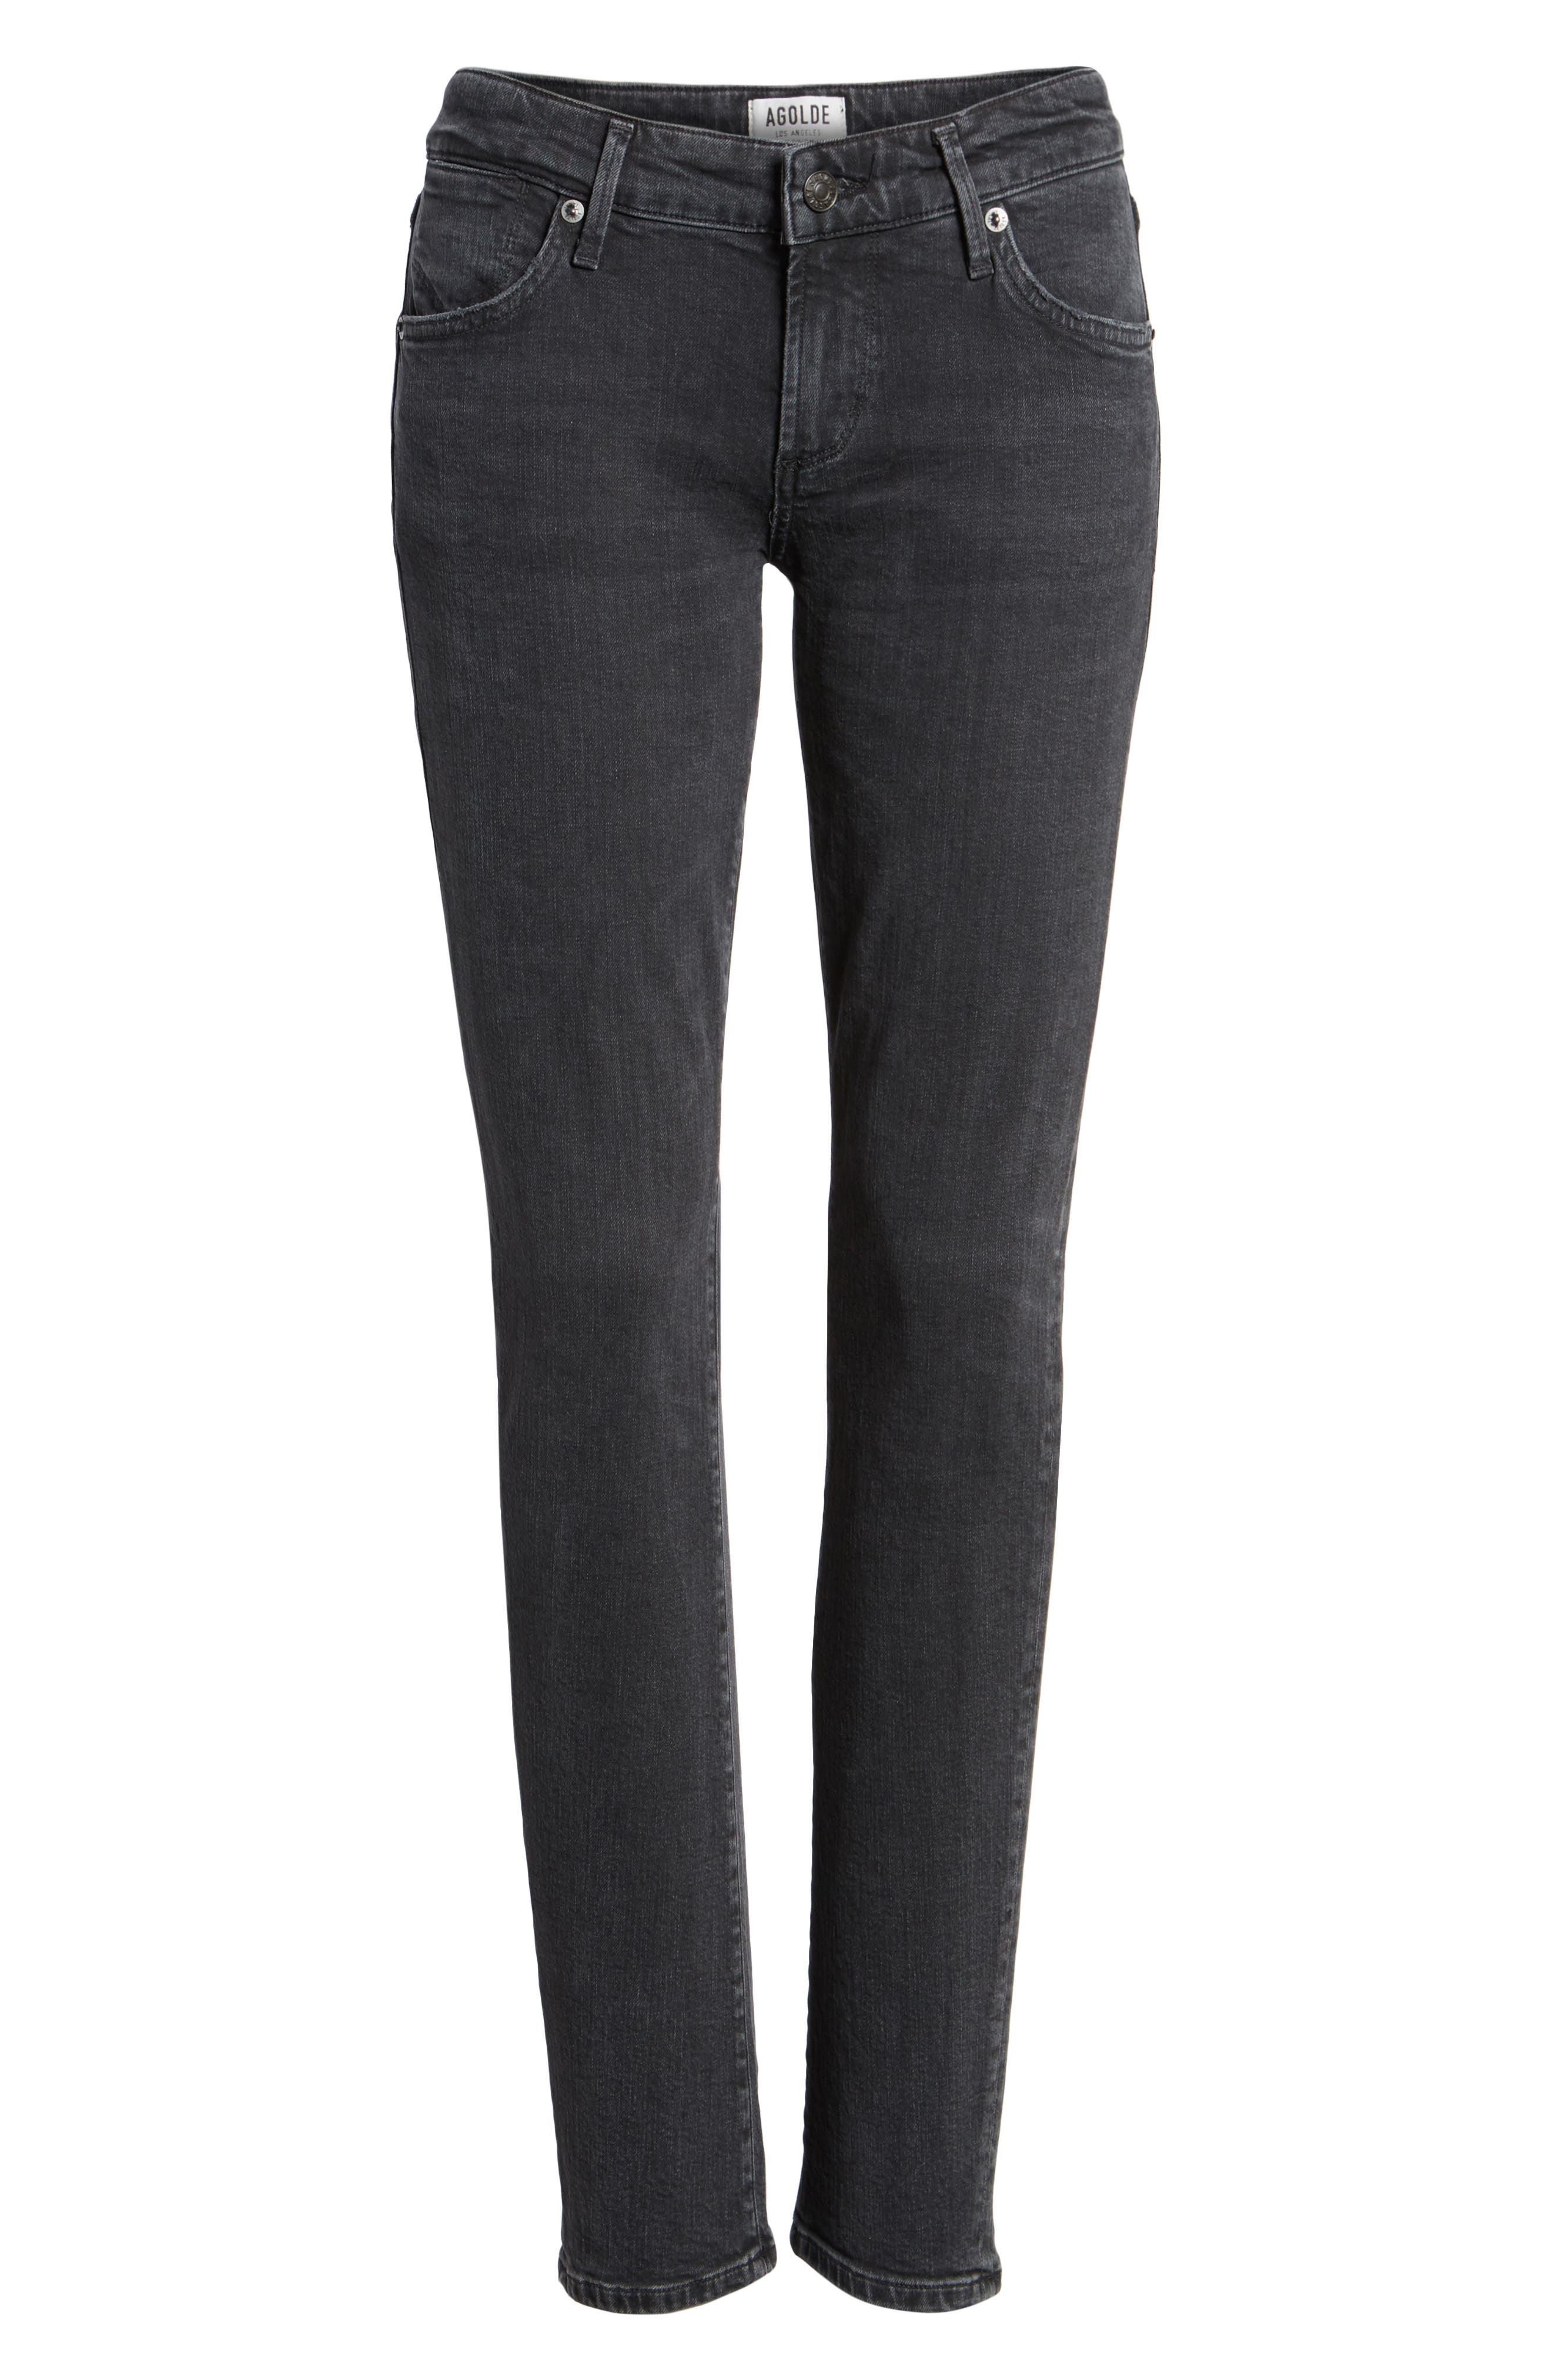 Chloe Low Rise Slim Jeans,                             Alternate thumbnail 6, color,                             Chelsea